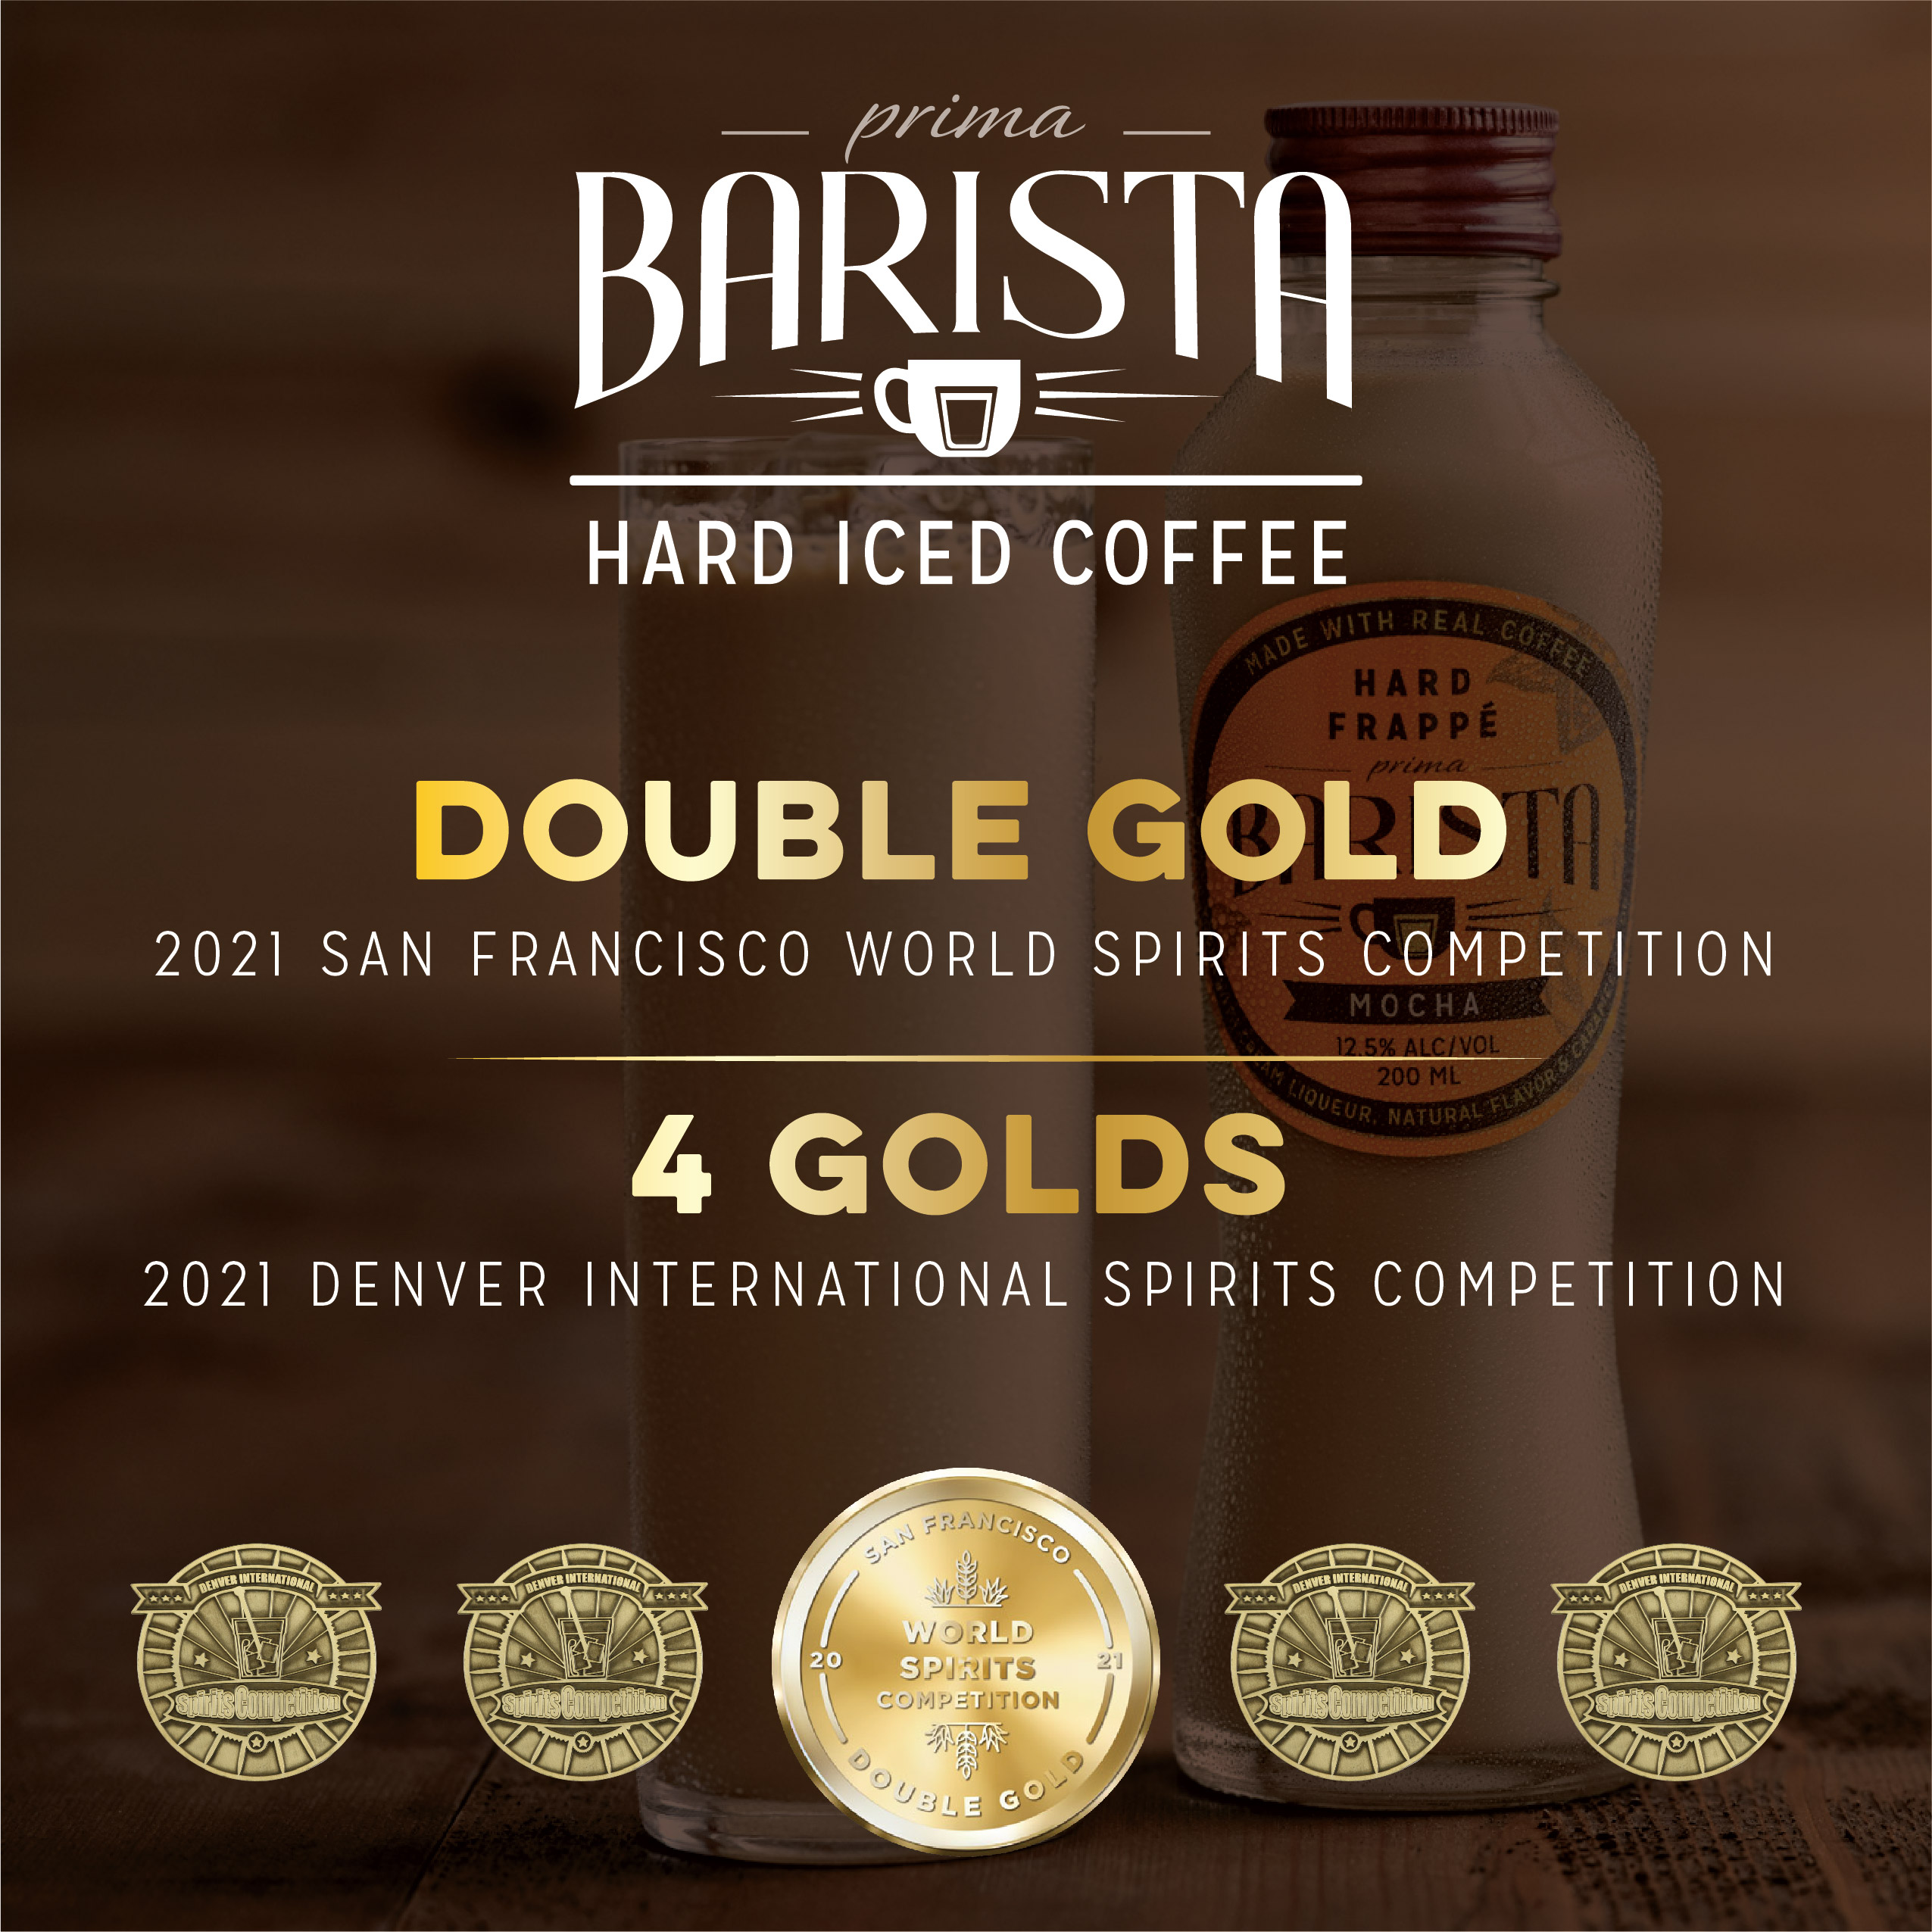 Award Winning Prima Barista Takes Home Gold for Taste and Design